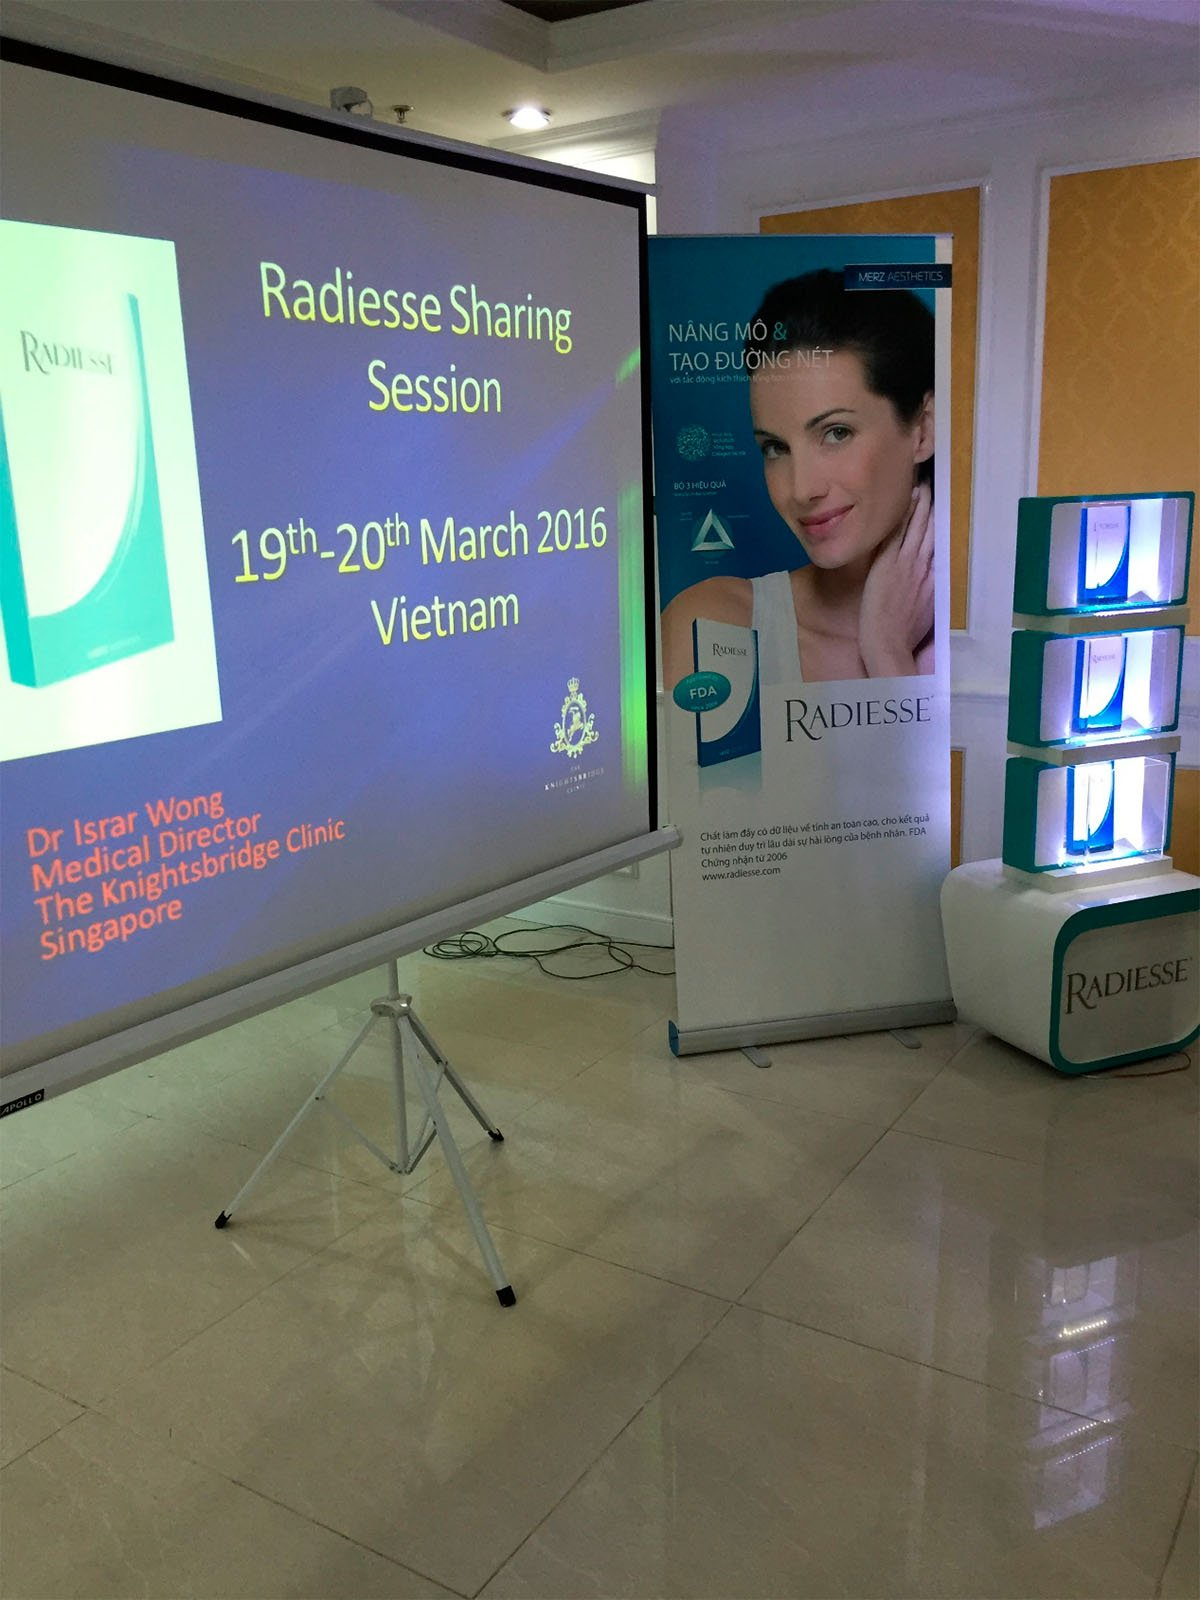 Radiesse light-box display